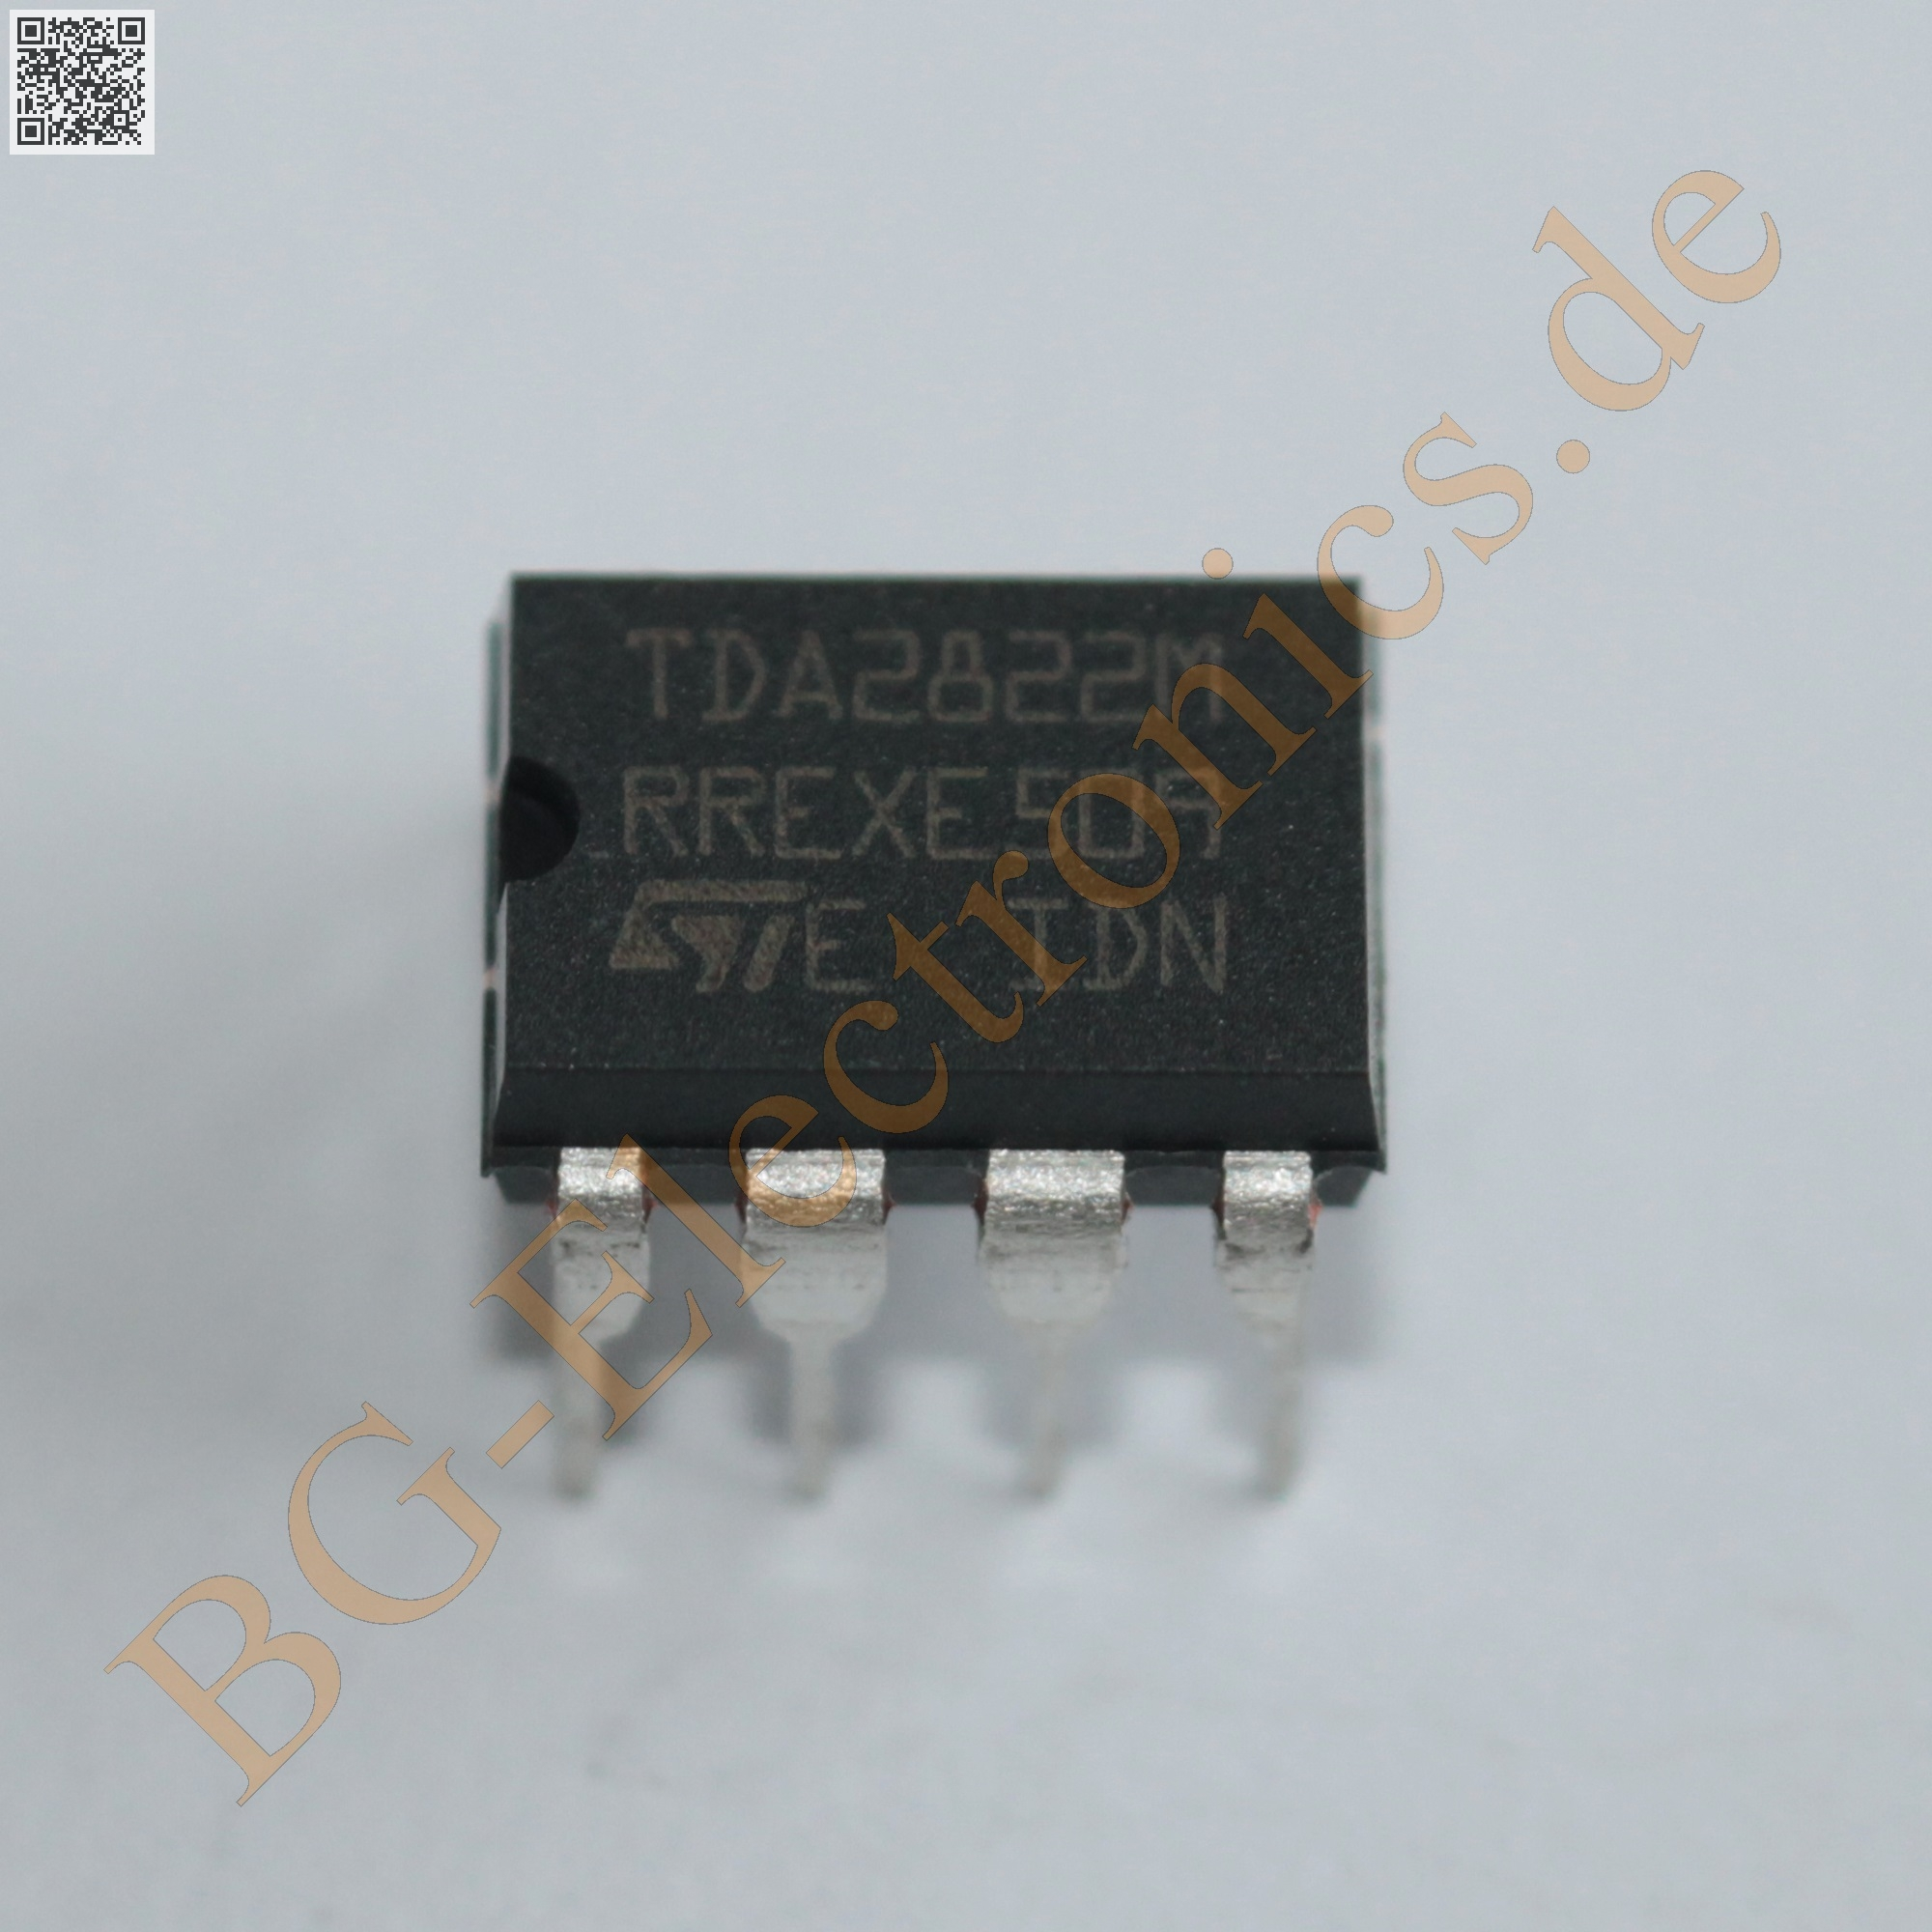 Tda2822m Bg Electronics Tda2822 Amplifier Circuit Dual Low Voltage Power